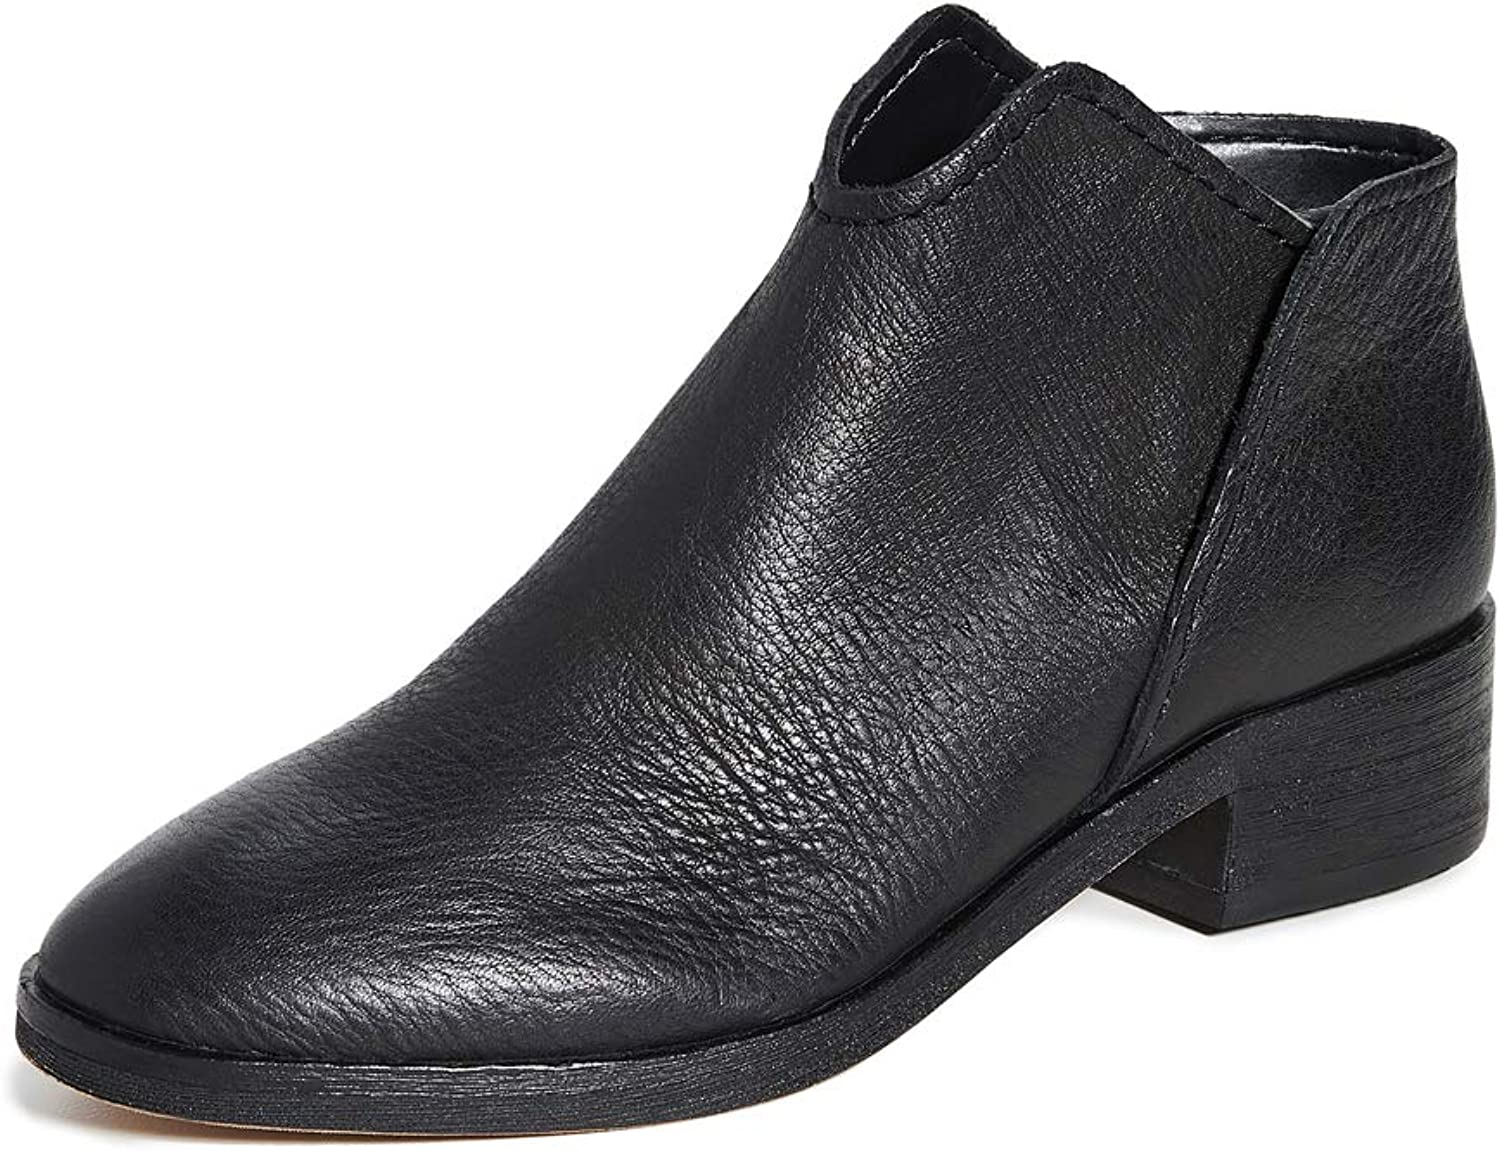 New mail order Dolce Vita Women's Ankle San Jose Mall Boot Trist